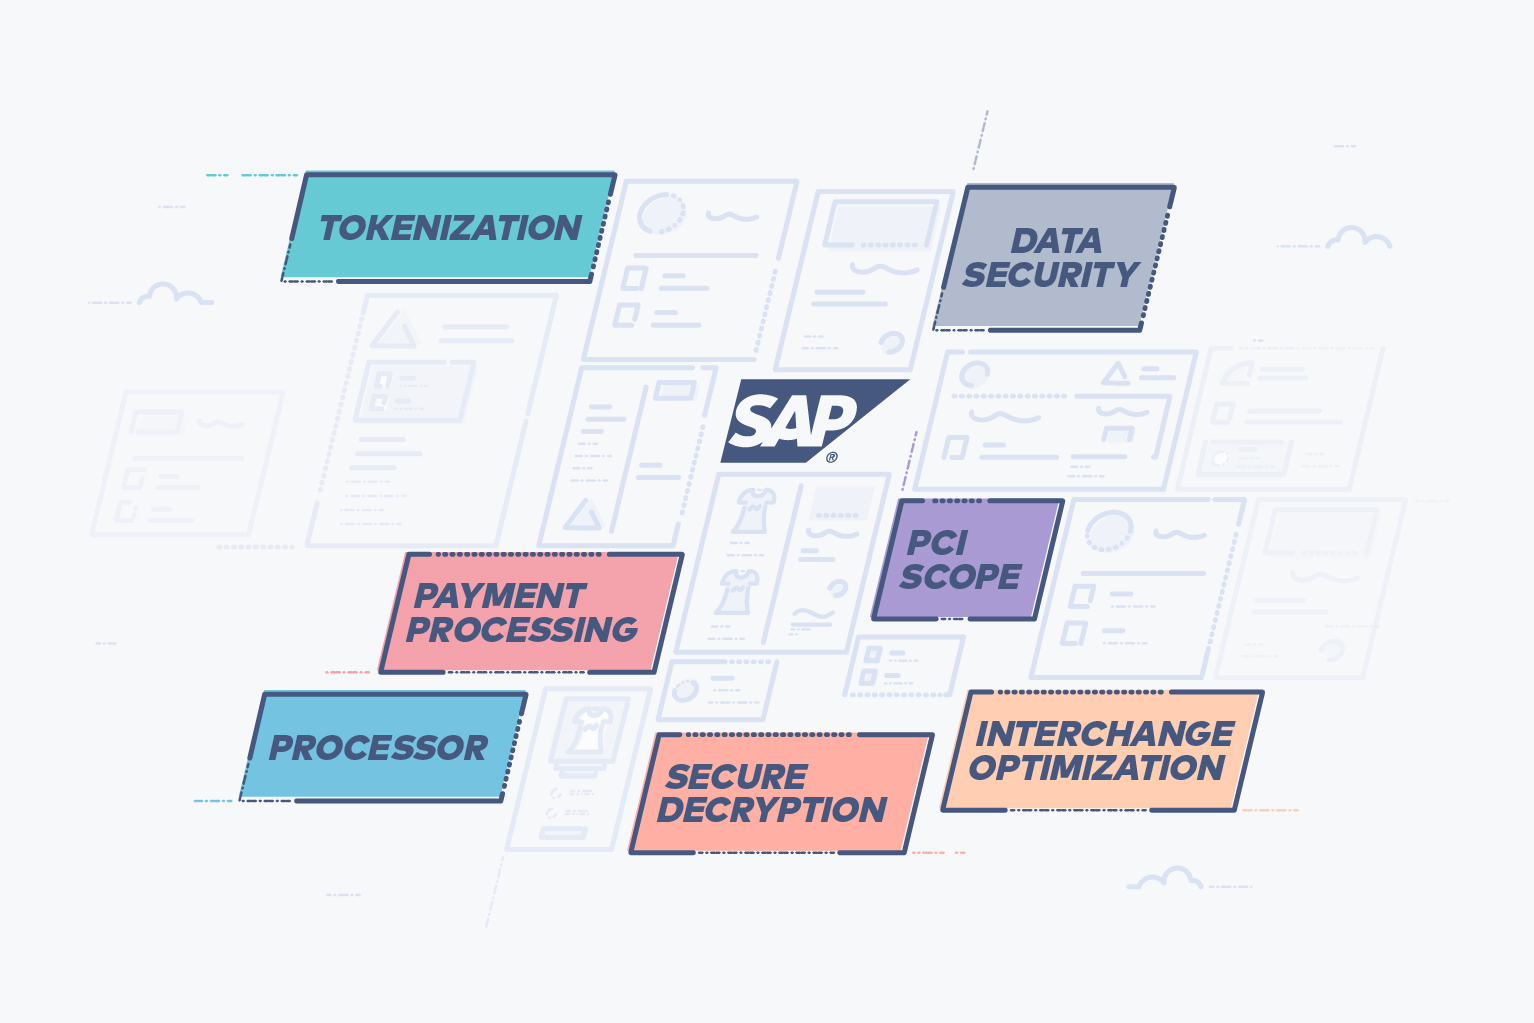 SAP payment processing - illustration of SAP and tokenization